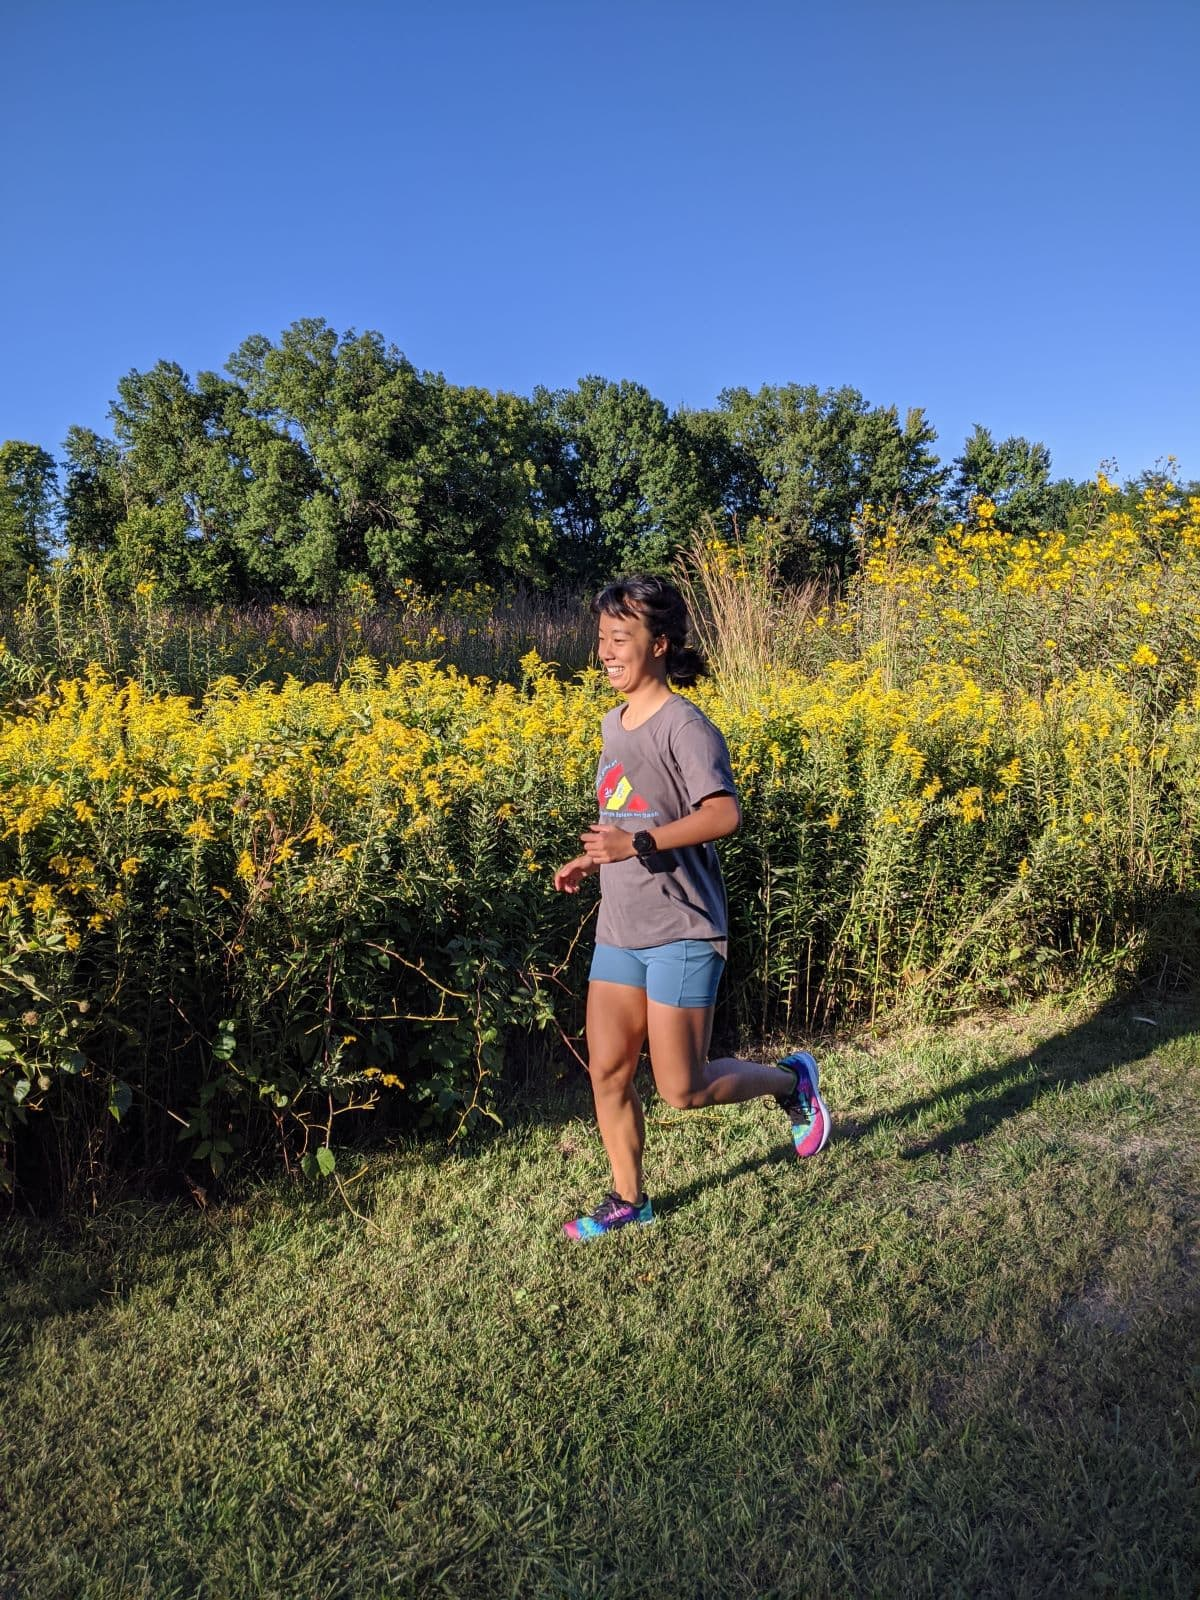 me running in a grass field with a blue sky and lots of yellow flowers in the background